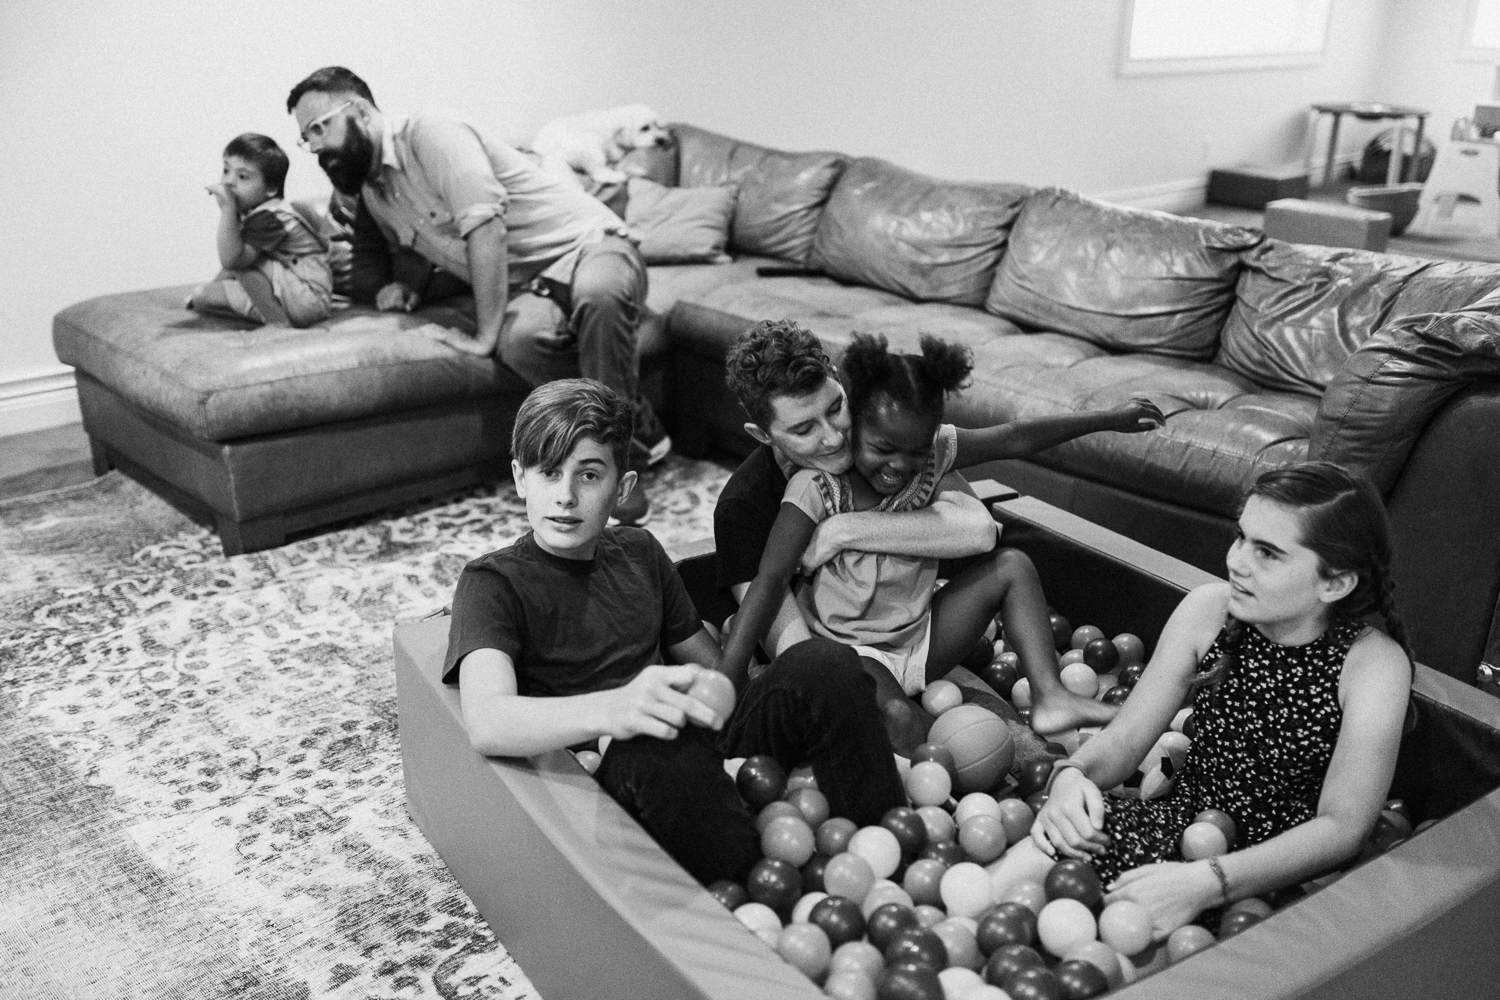 candid-black-and-white-family-photo-in-play-pin-of-plastic-balls-during-in-home-session-with-jen-fairchild-in-salt-lake-city-utah